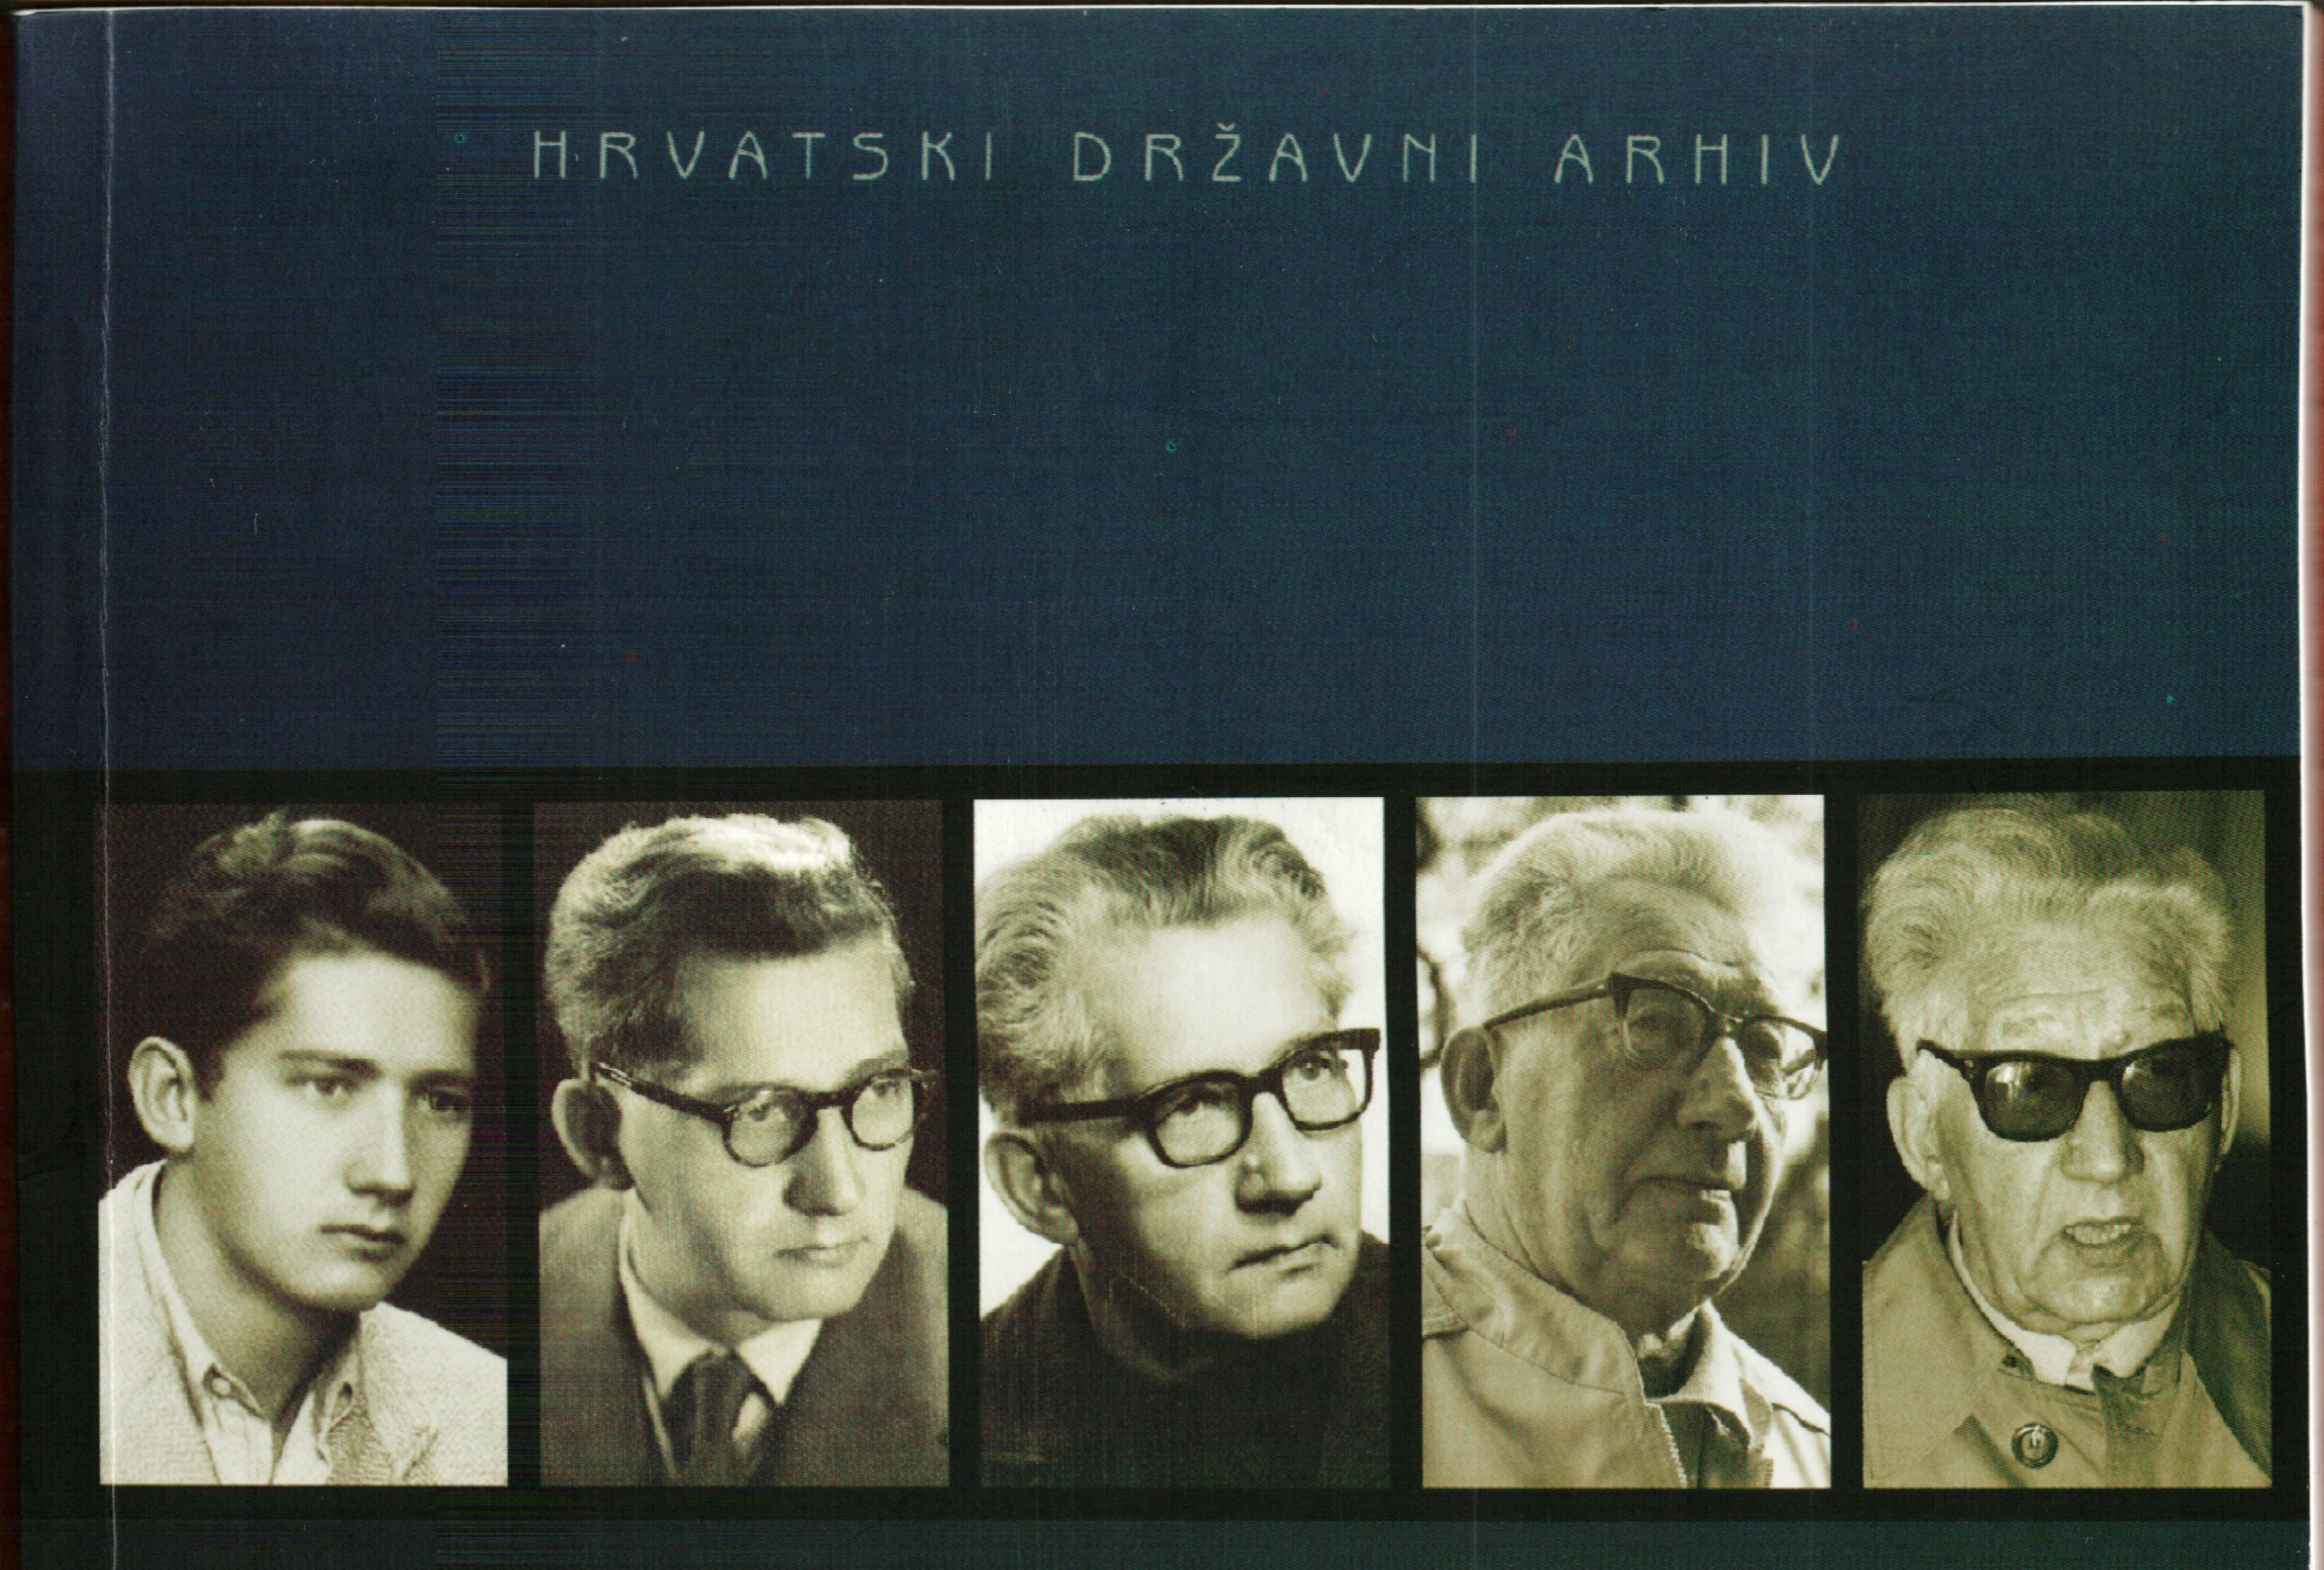 Part of the cover of the book Personal Archival Fund Rudi Supek: Analytical Inventory (Zagreb: Croatian State Archives, 2010), by Marijan Bosnar.